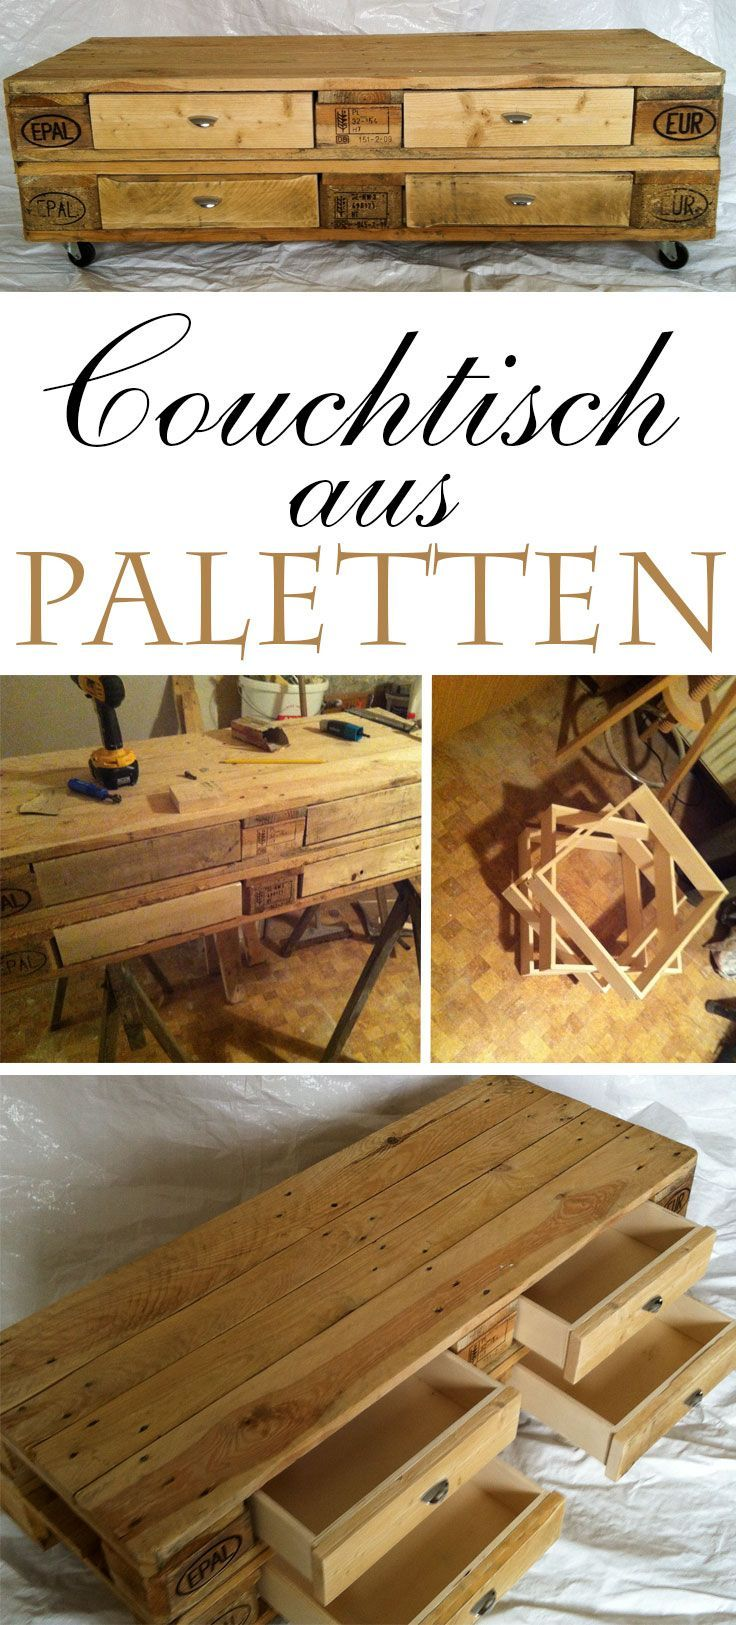 userprojekt wohnen deko paletten ideen recycling und upcycling vorlagen f r paletten. Black Bedroom Furniture Sets. Home Design Ideas